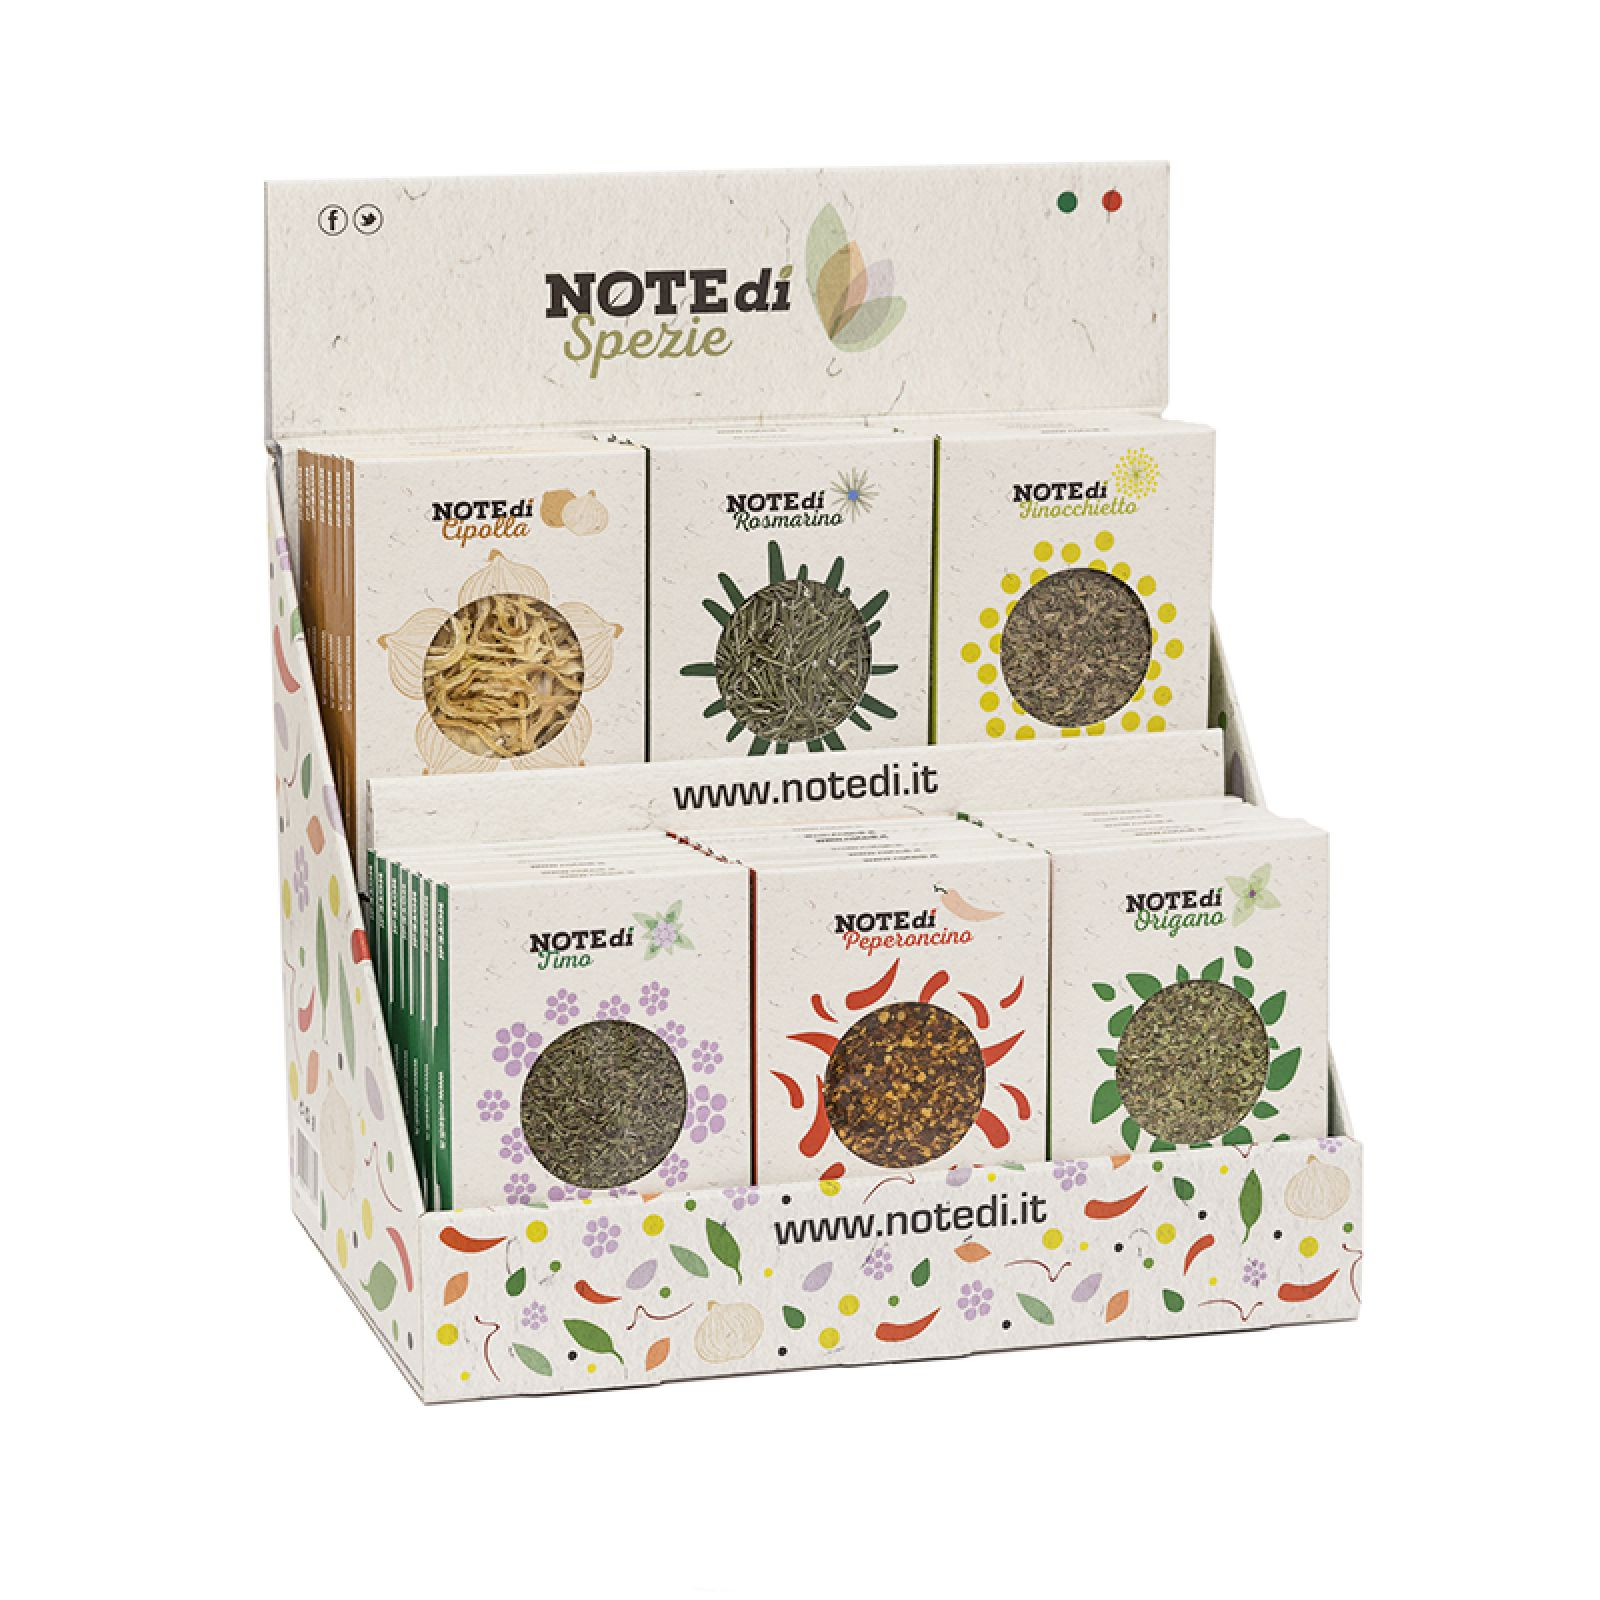 NOTEdi Spezie Countertop Display Box